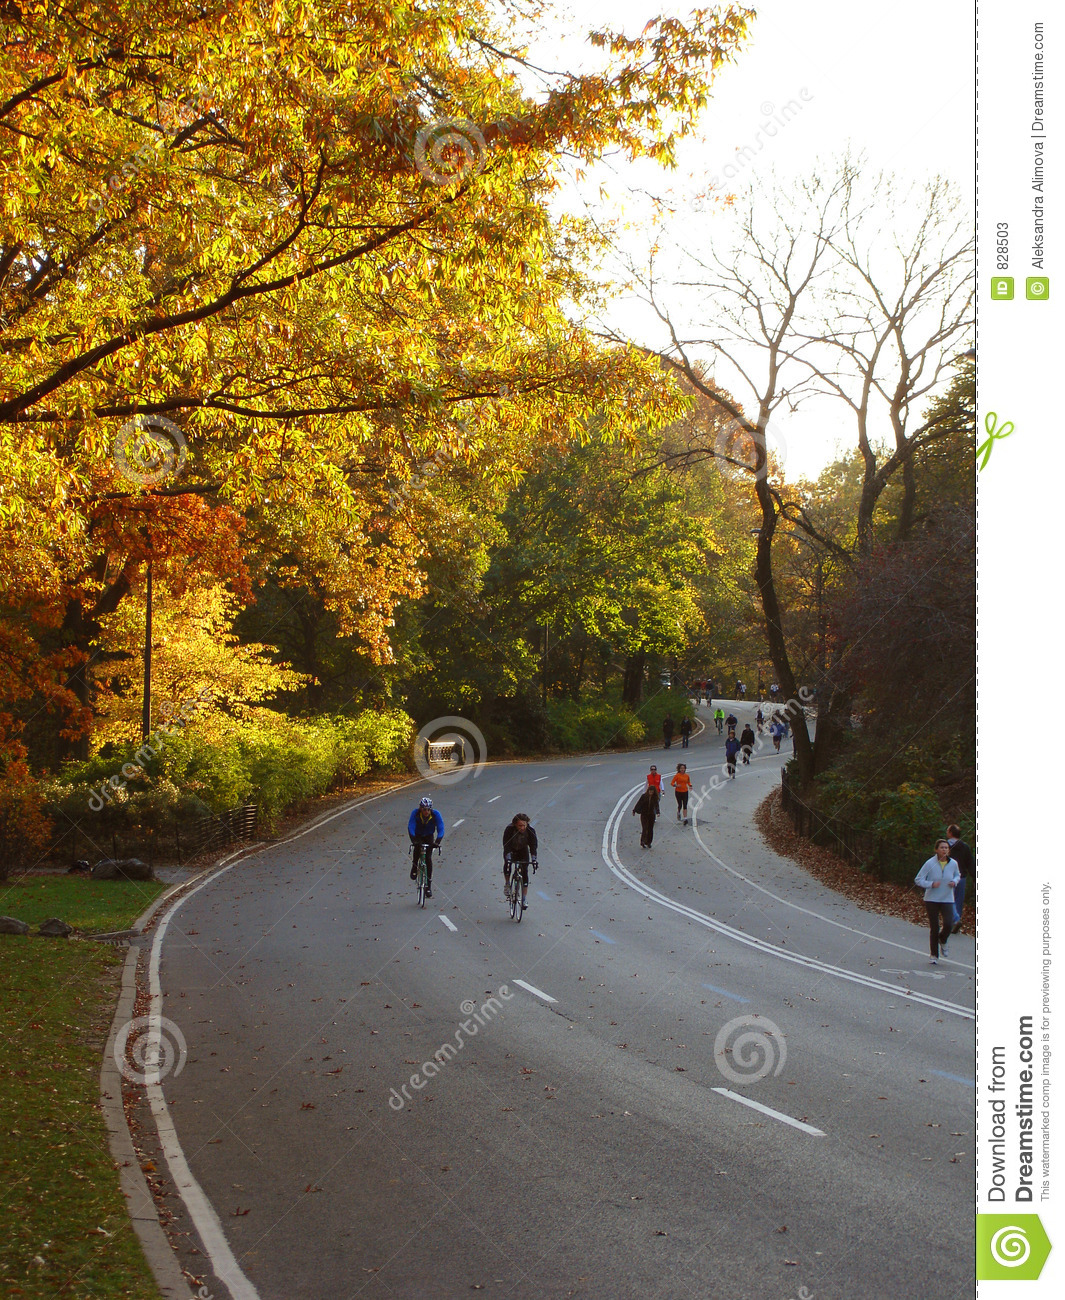 Sport activity in Central Park, New York, NY. Fall evening